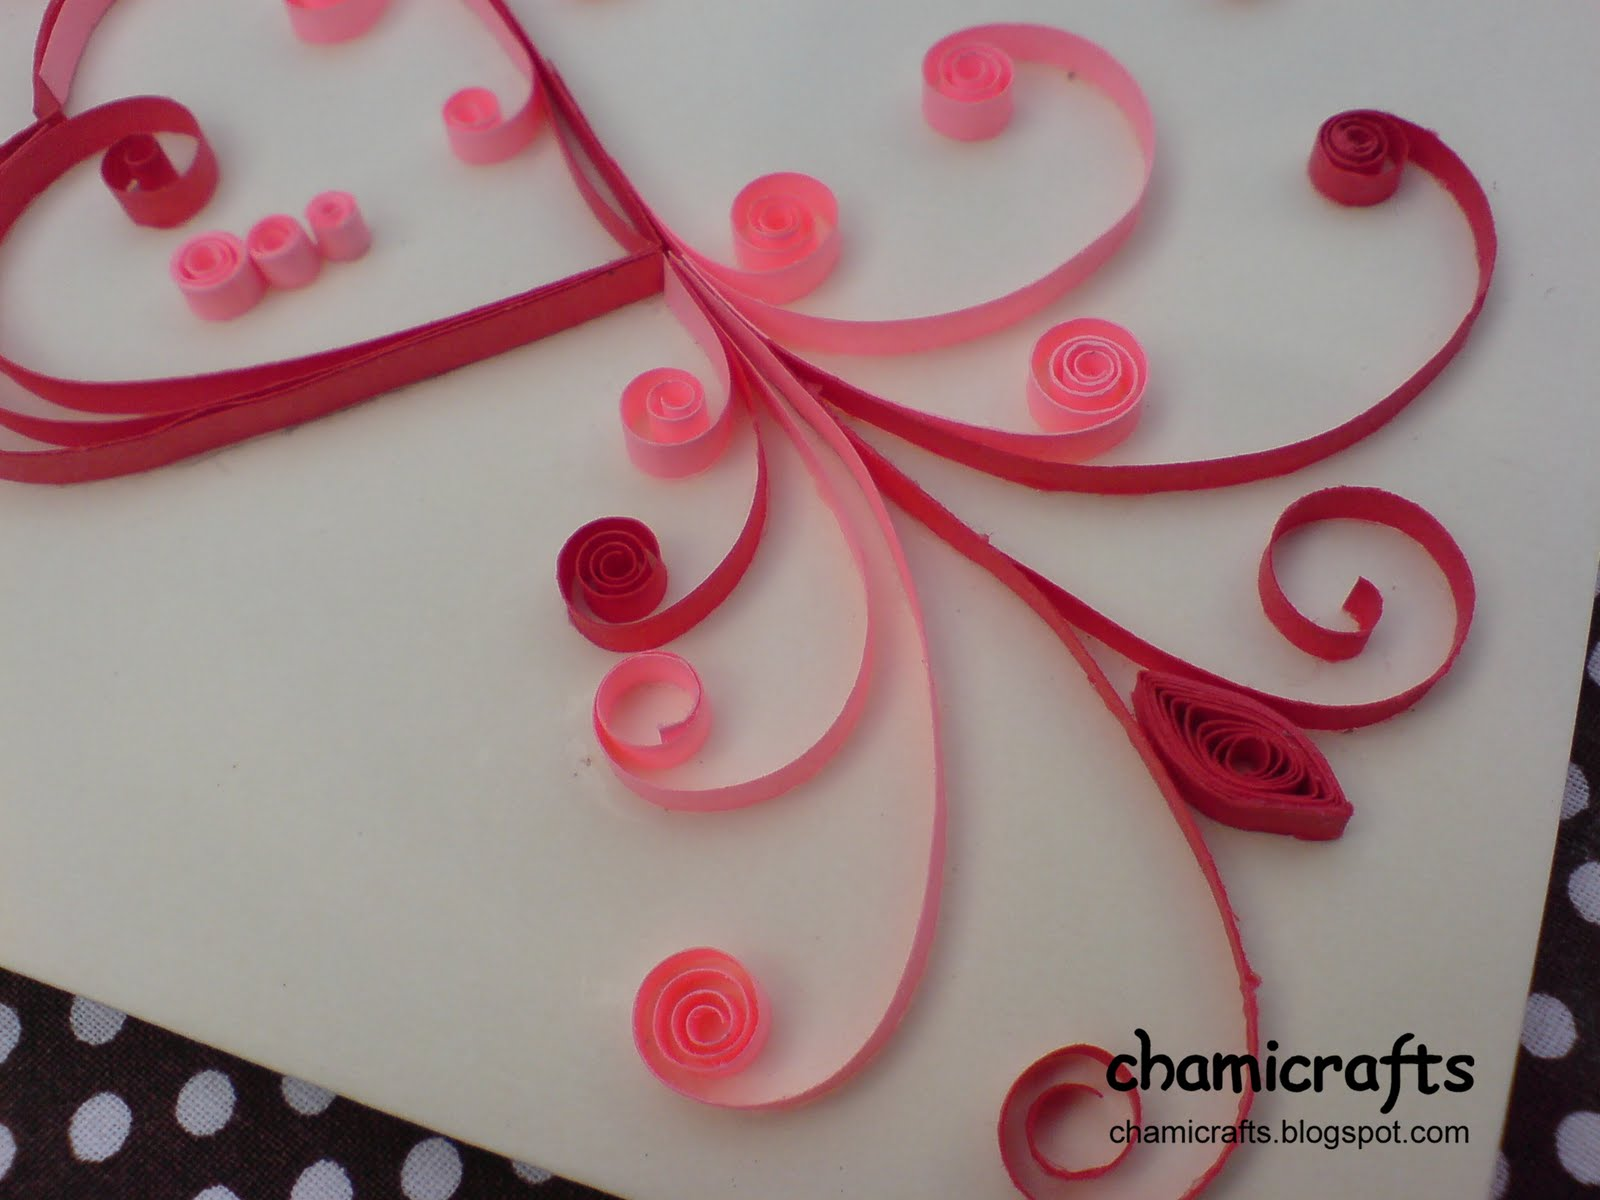 Chami crafts handmade greeting cards quilled heart in red and pink thursday july 14 2011 m4hsunfo